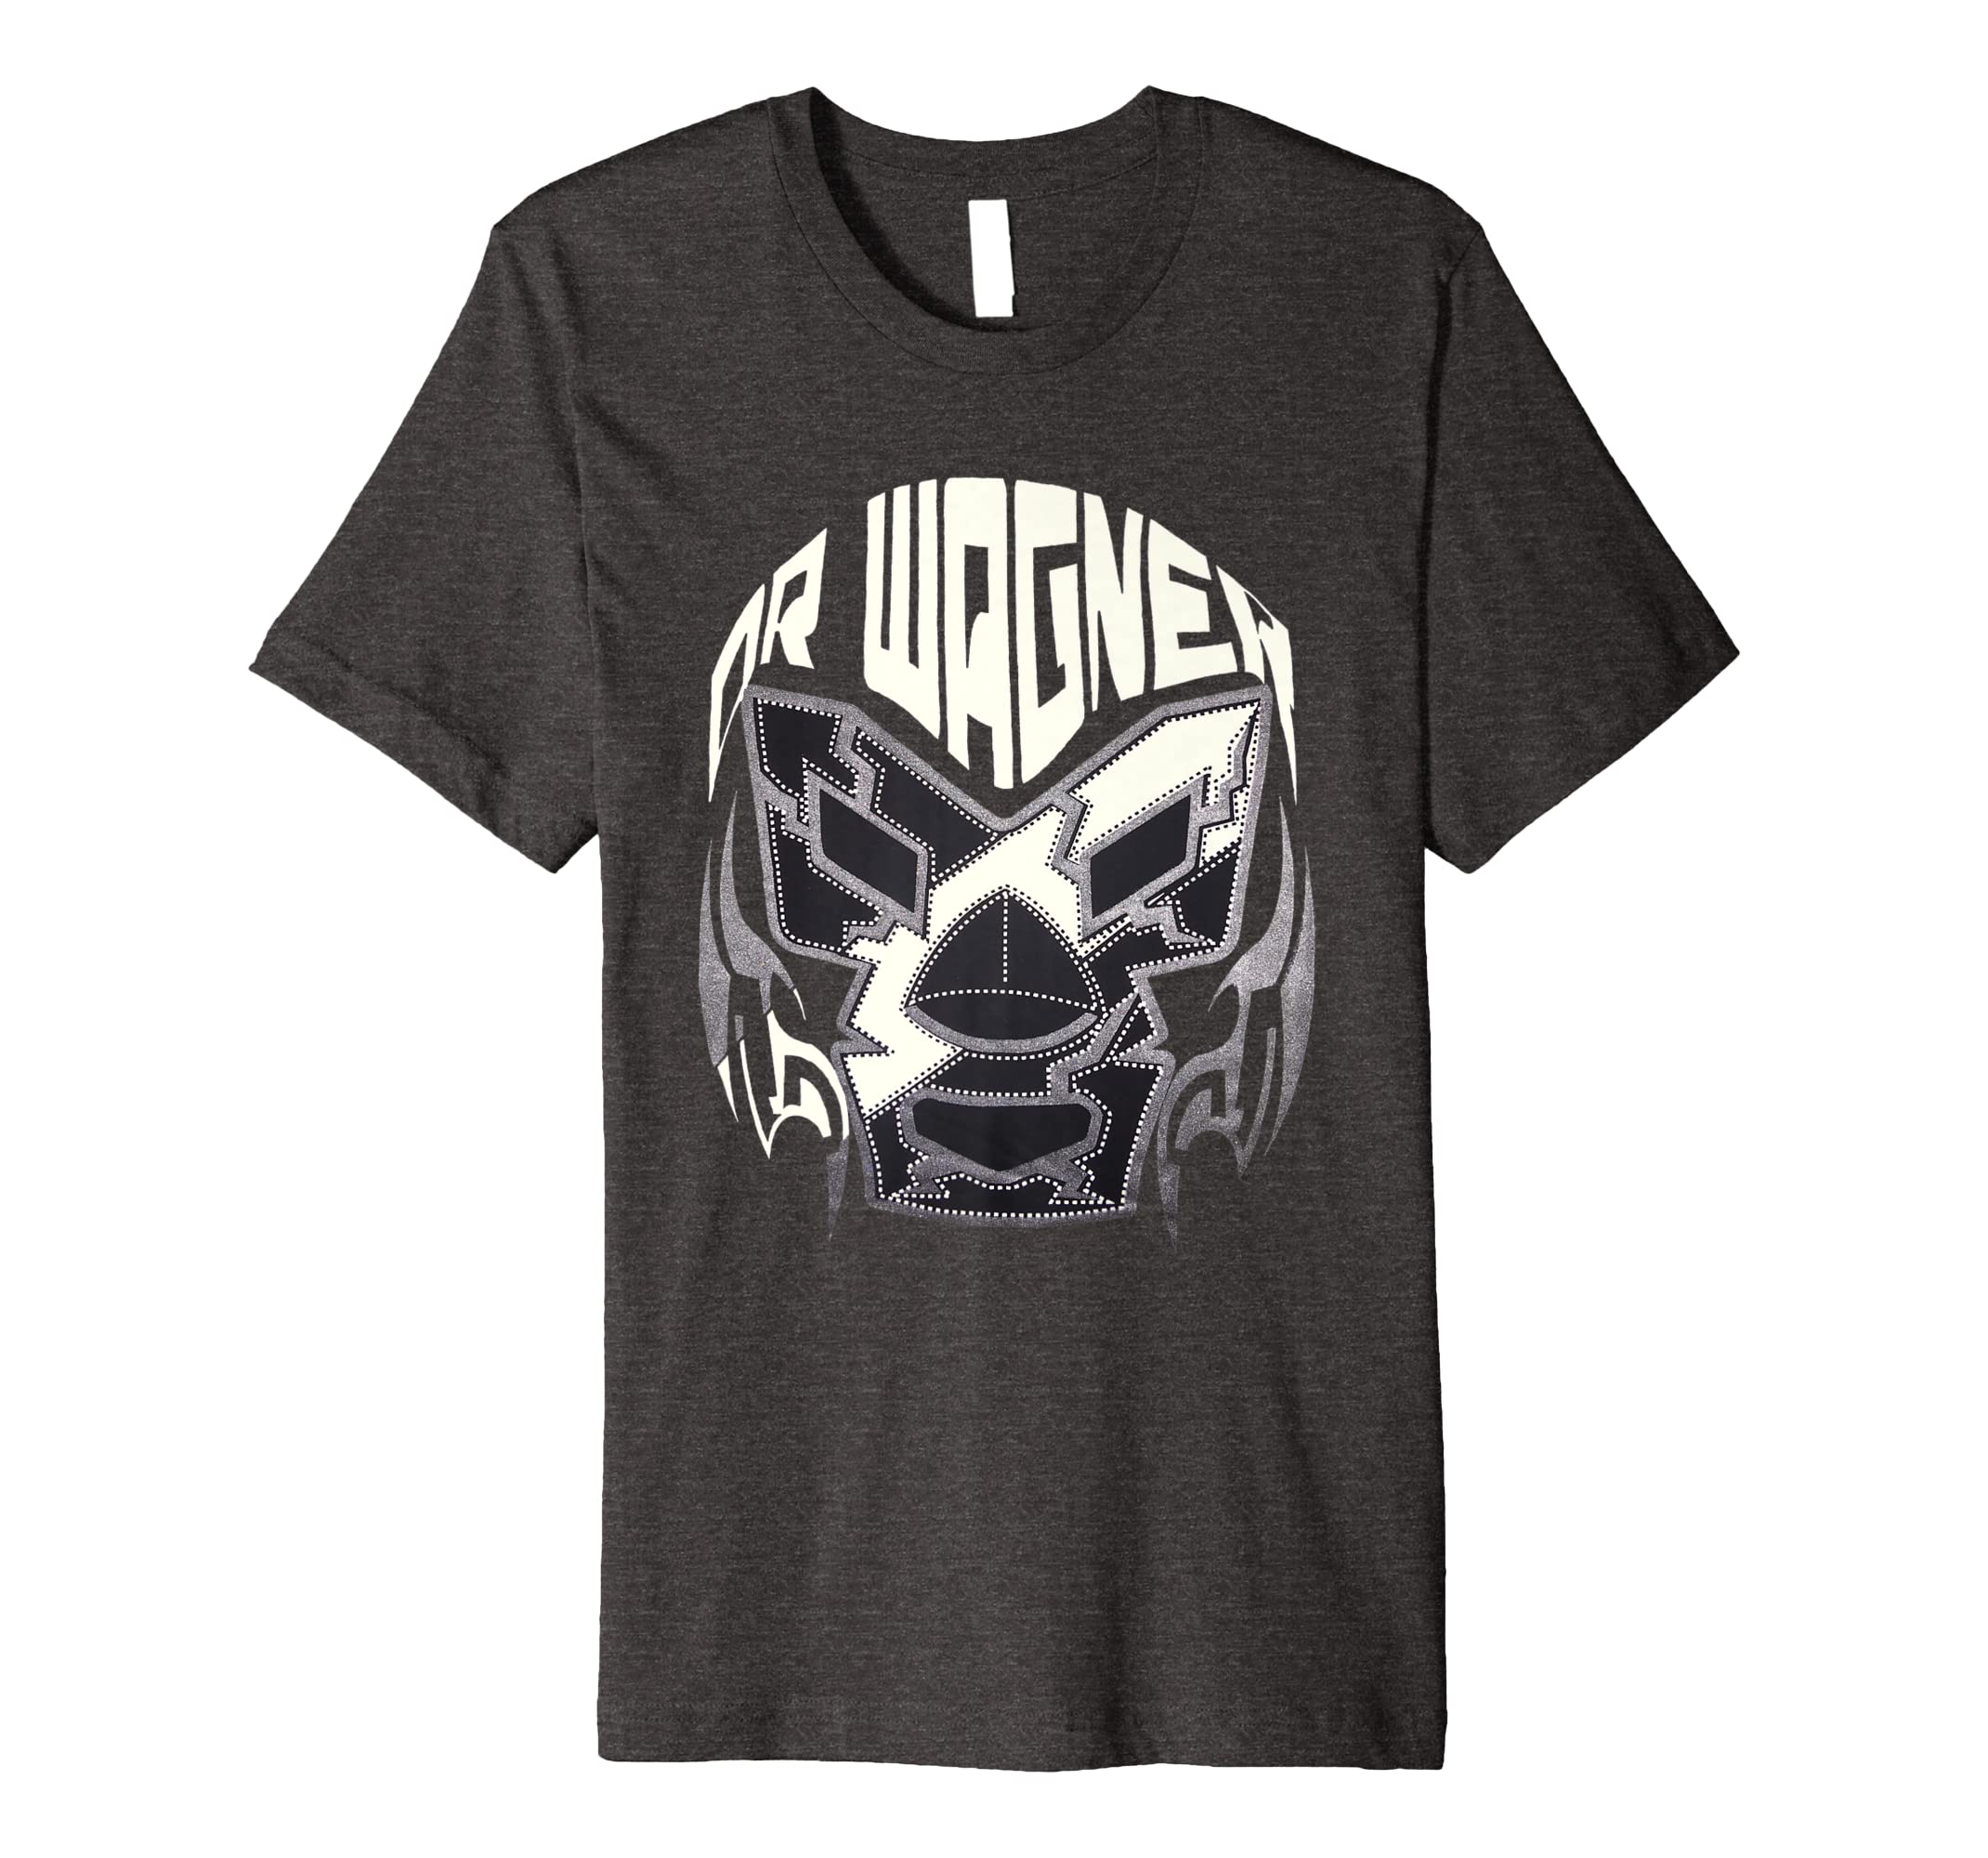 Amazon.com: DR WAGNER REY WAGNER LUCHA LIBRE WRESTLING MEXICAN LEGEND: Clothing